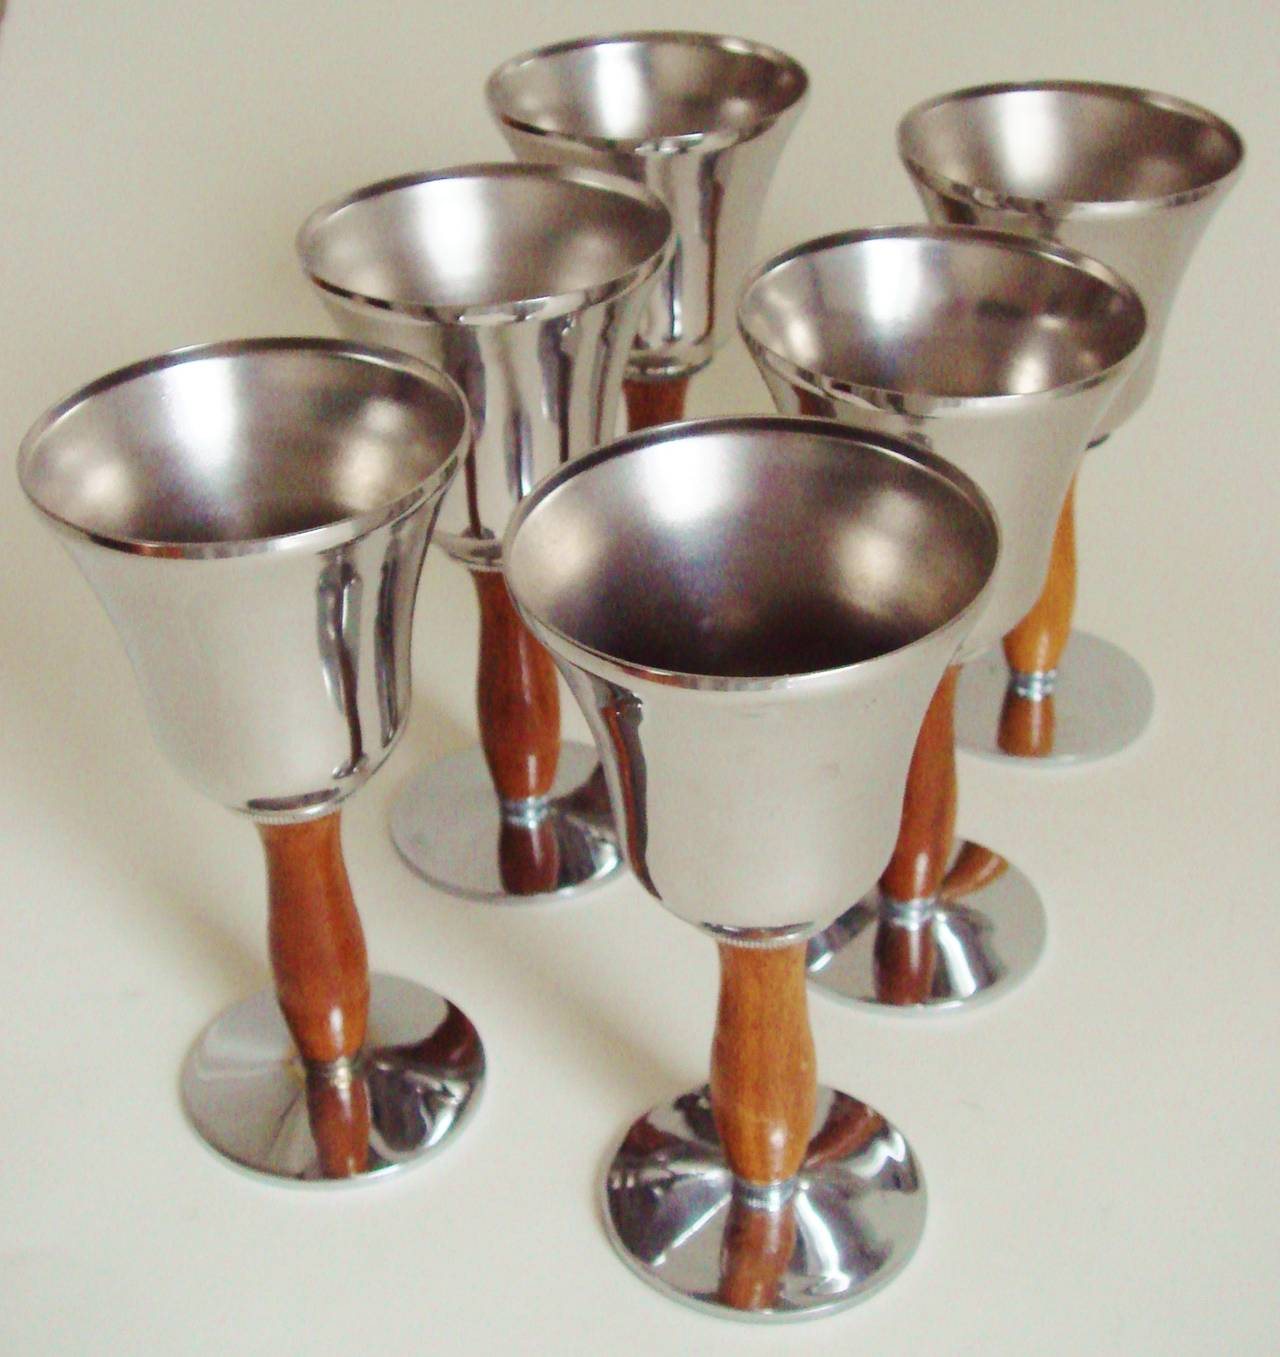 Iconic American Art Deco Seven-Piece Town Crier Cocktail Set by Keystone Silver For Sale 1